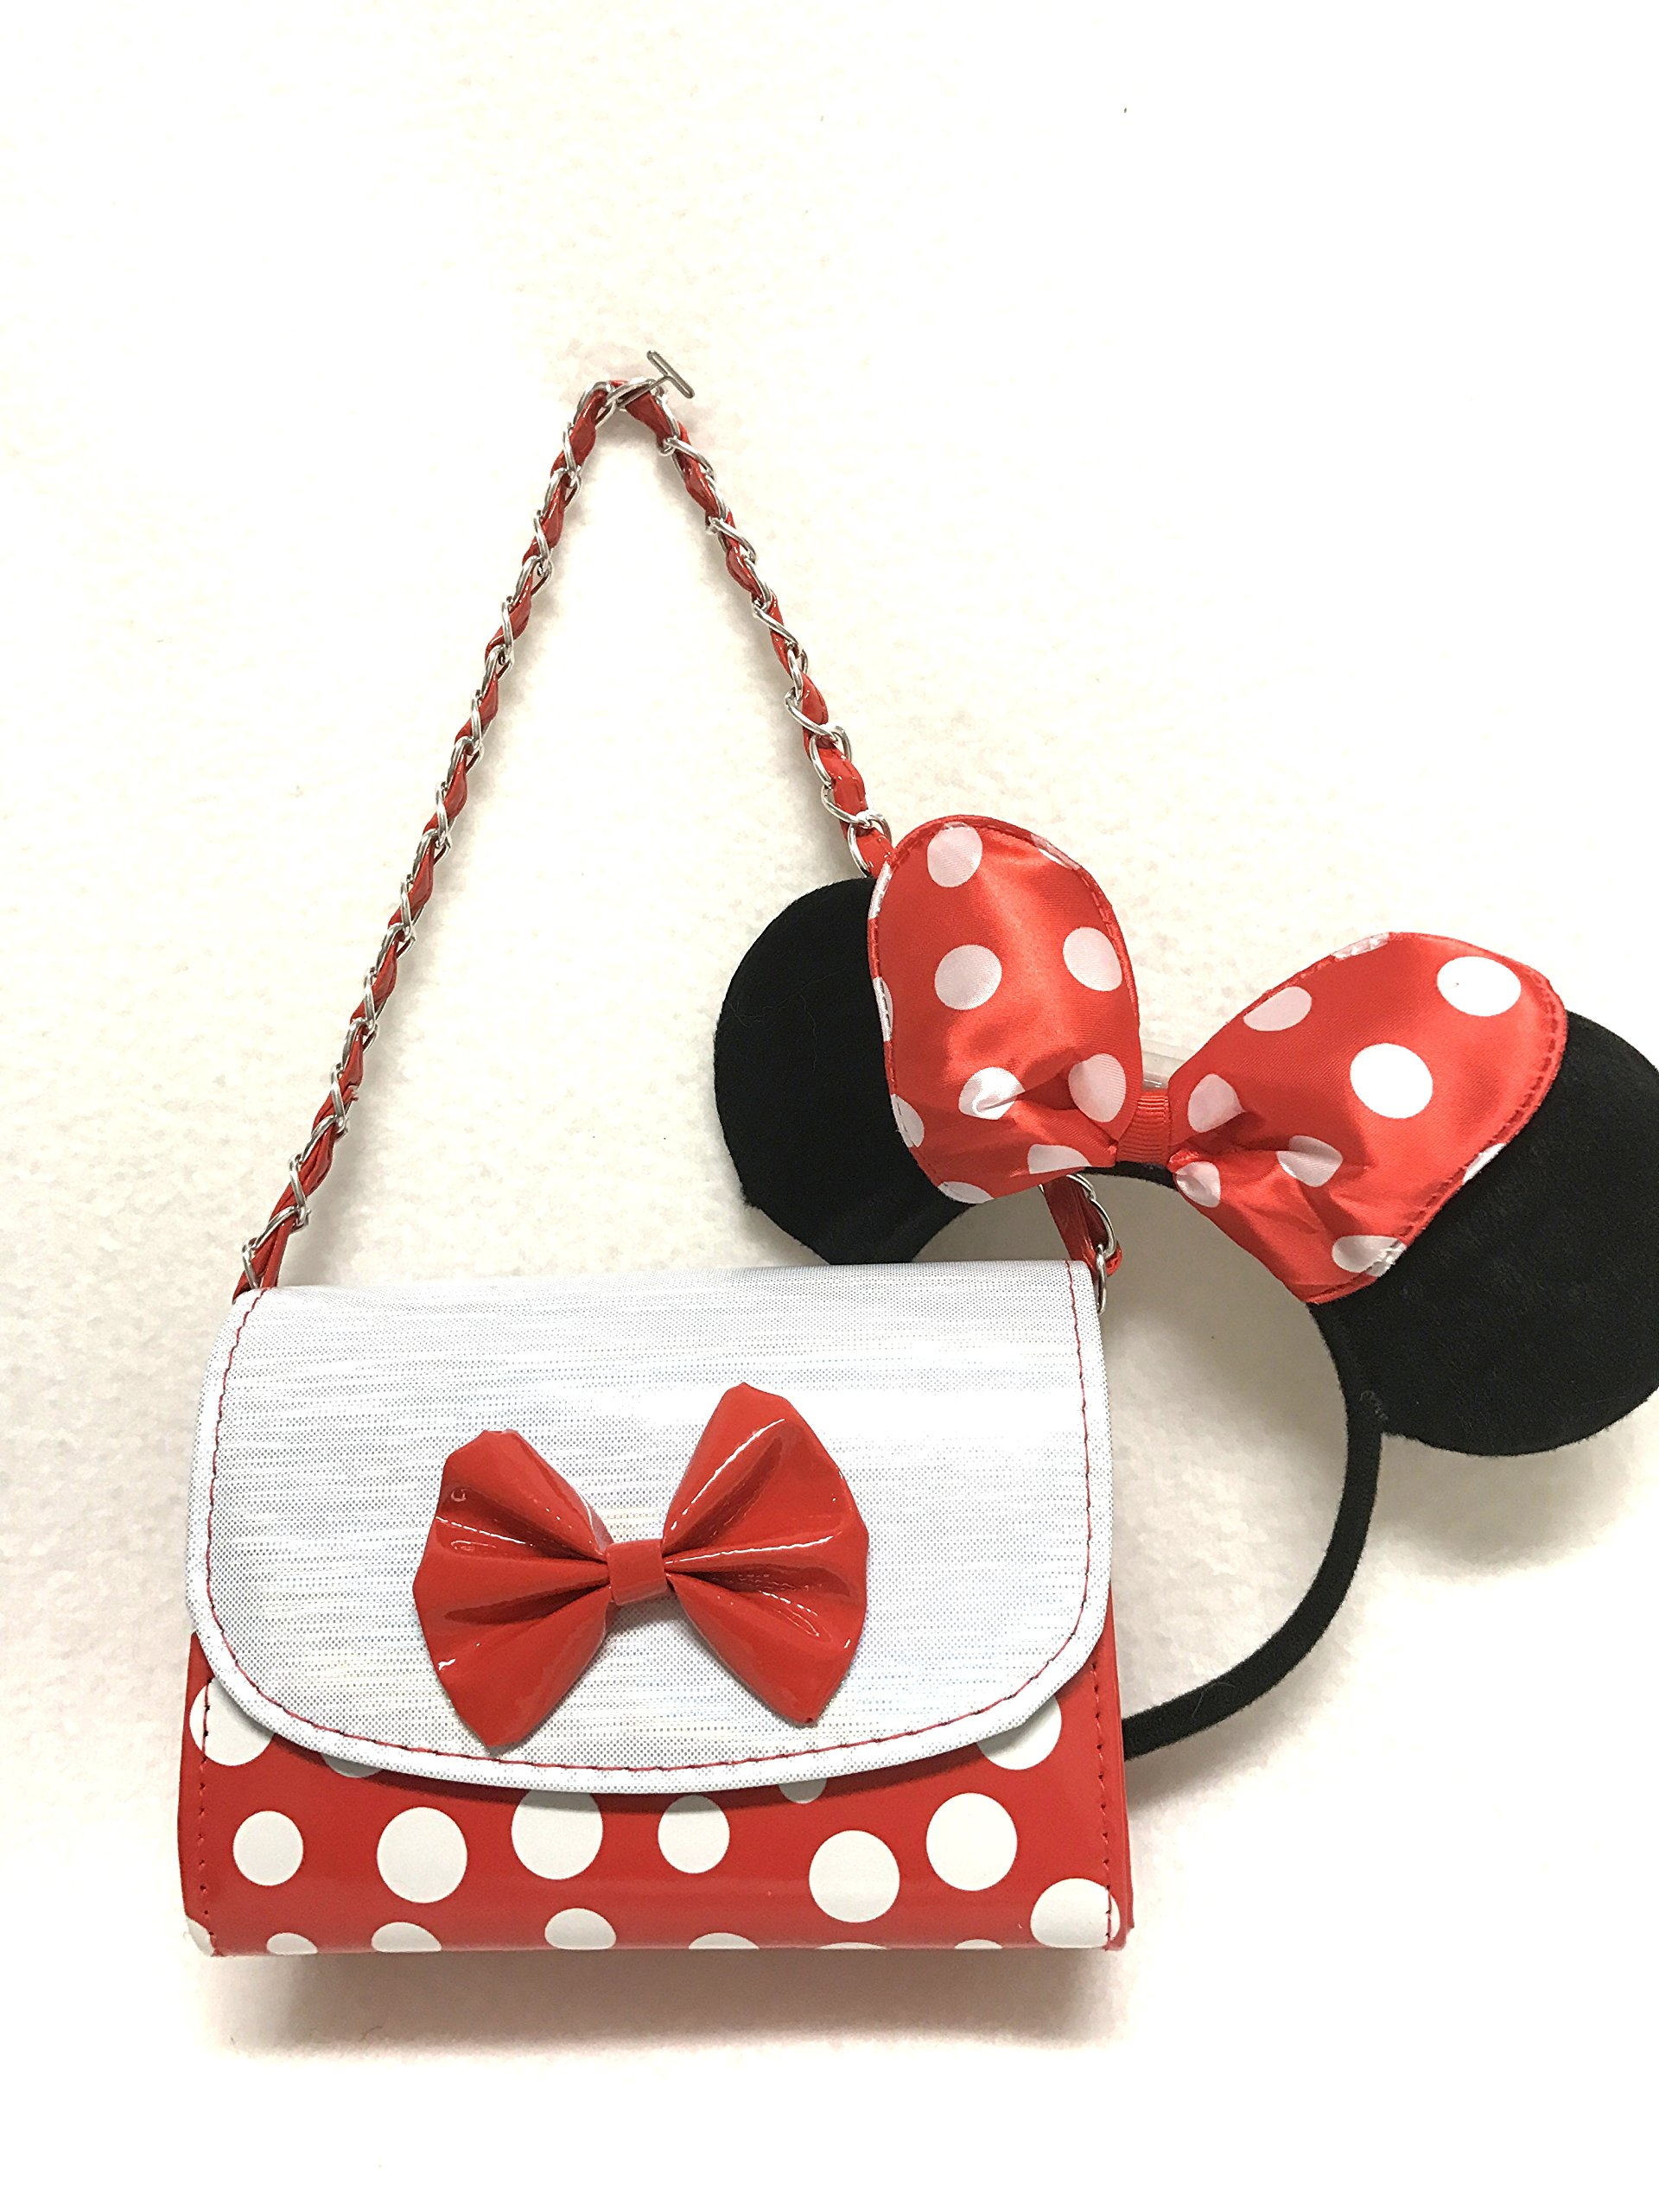 0b70ae135 Get Quotations · Mickey Mouse Minnie Mouse Polka Dot Girl Crossbody  Shoulder Bag Purse